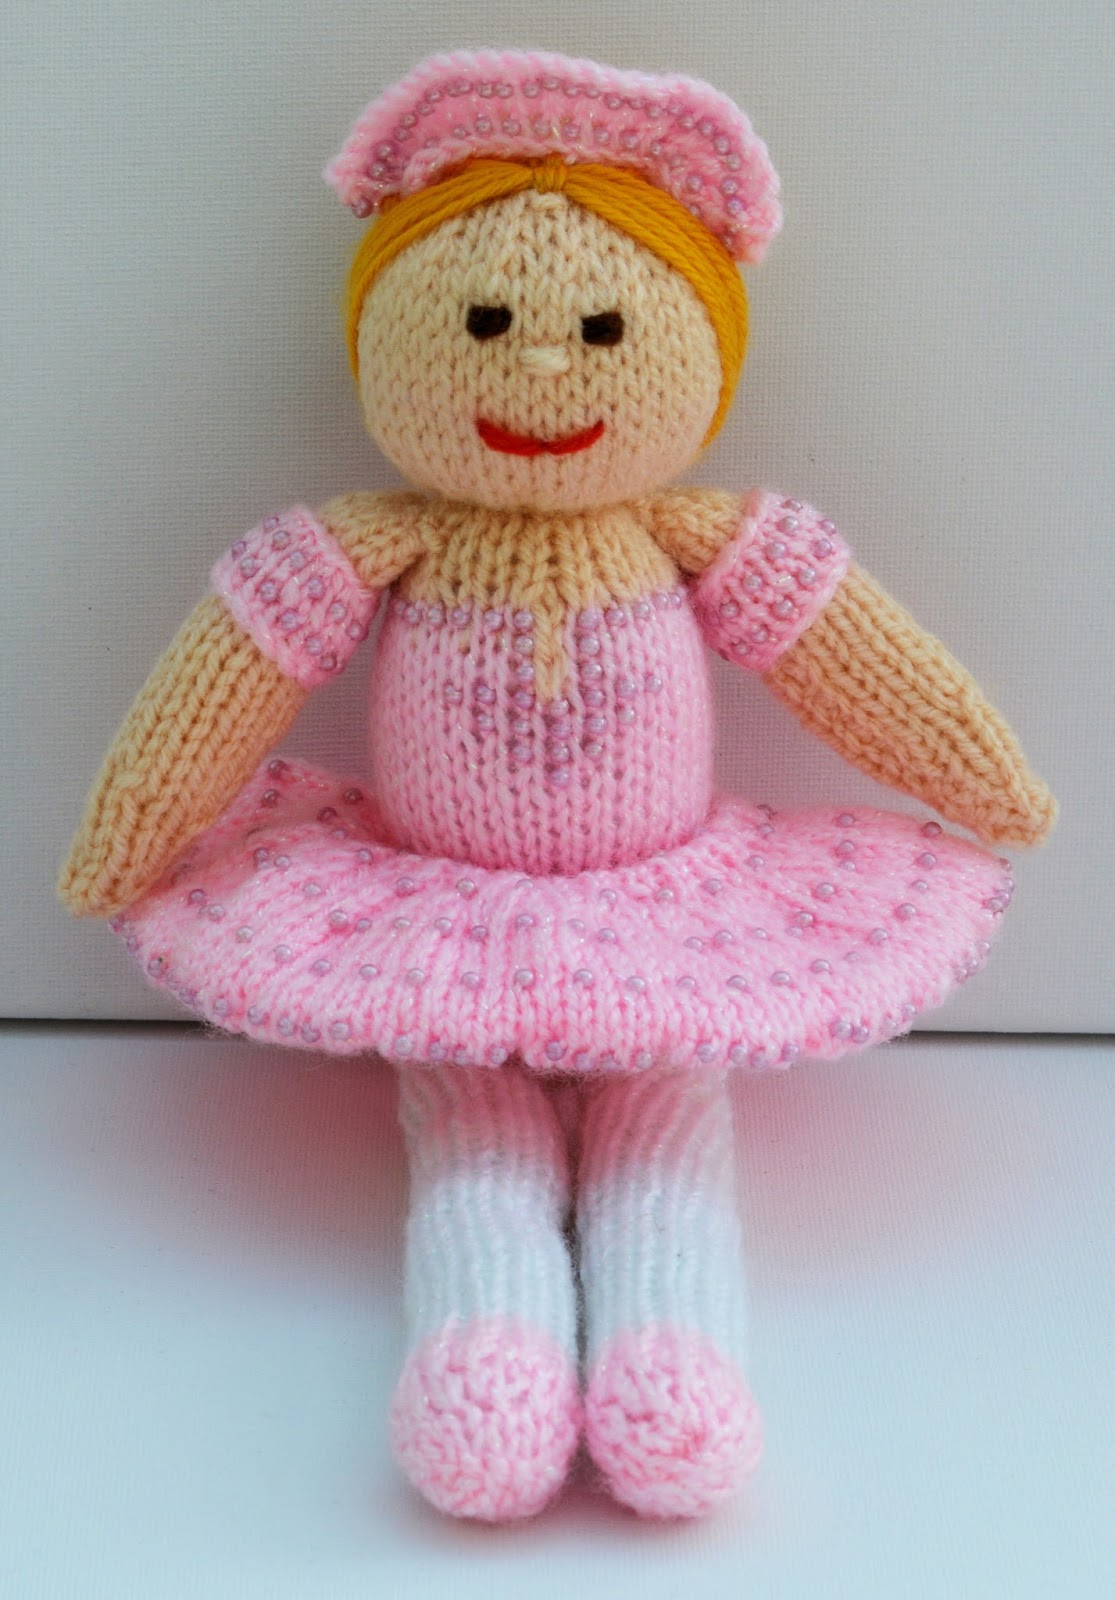 Knitting Pattern Ballerina Doll : Edith Grace Designs: Betsy Ballerina Doll Knitting Pattern